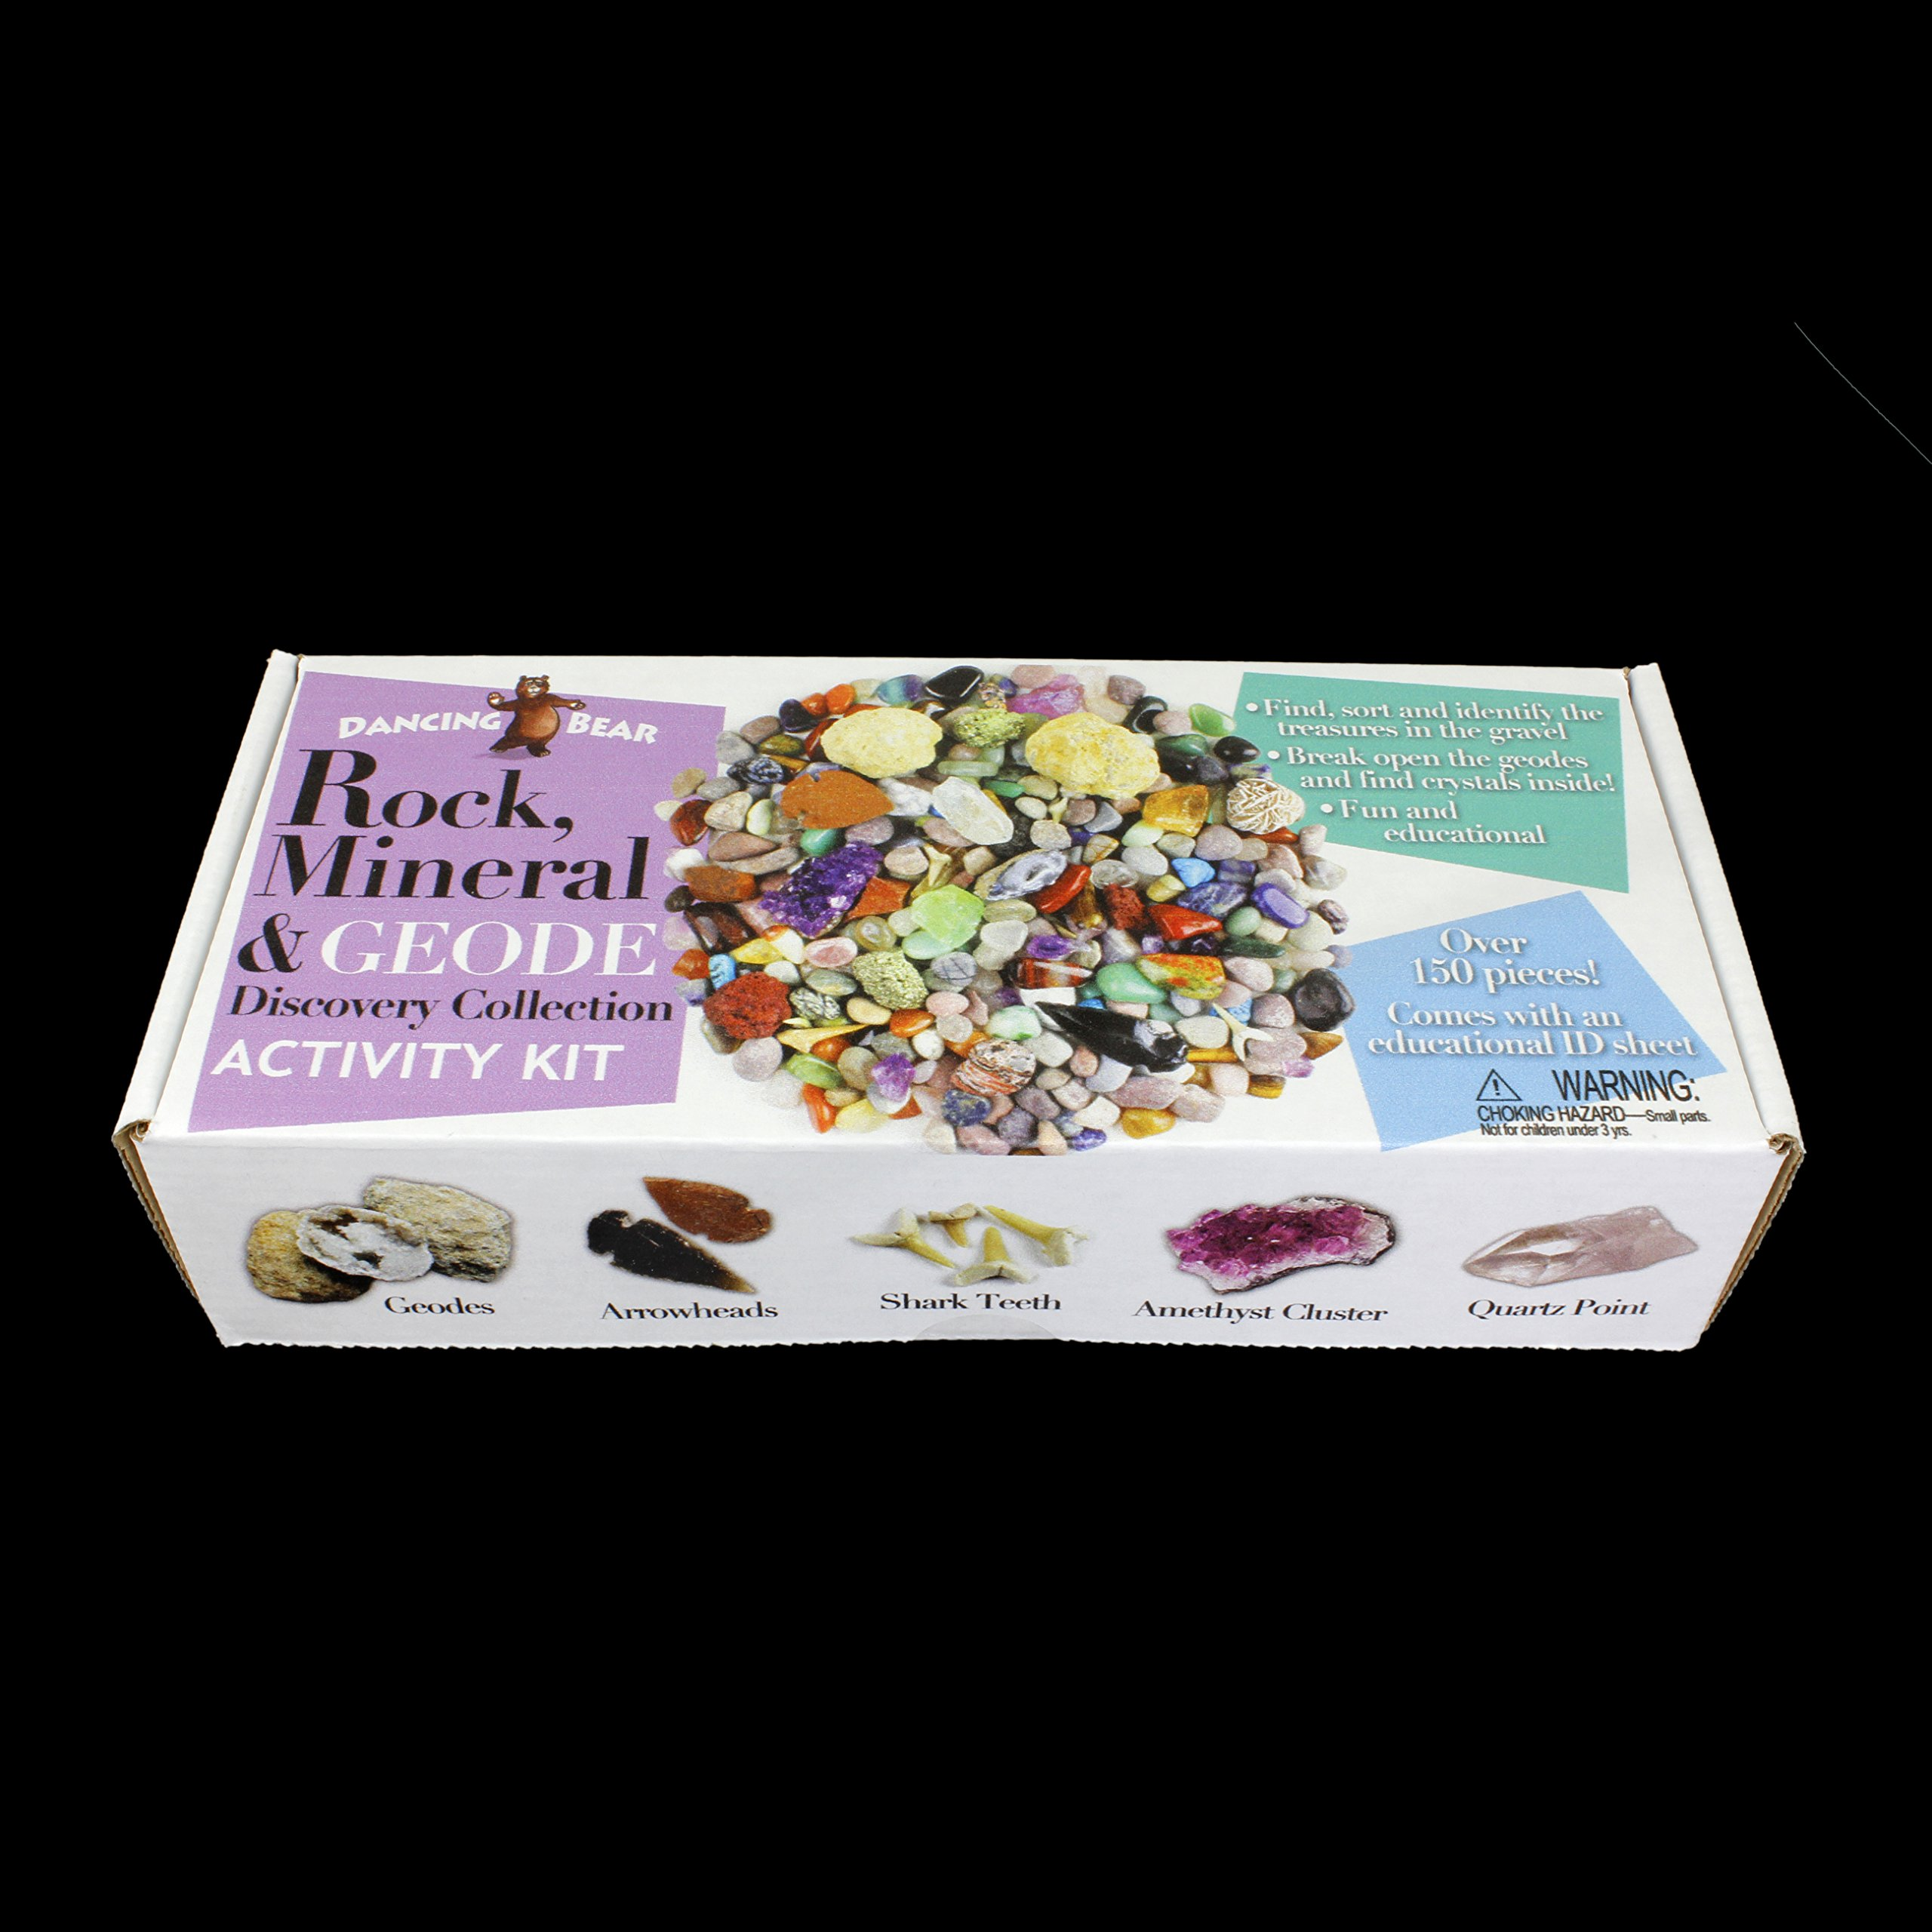 Dancing Bear Rock & Mineral Collection Activity Kit (Over 150 Pcs) , Educational Identification Sheet Plus 2 Easy Break Geodes, Fossilized Shark Teeth and Arrowheads, Brand by Dancing Bear